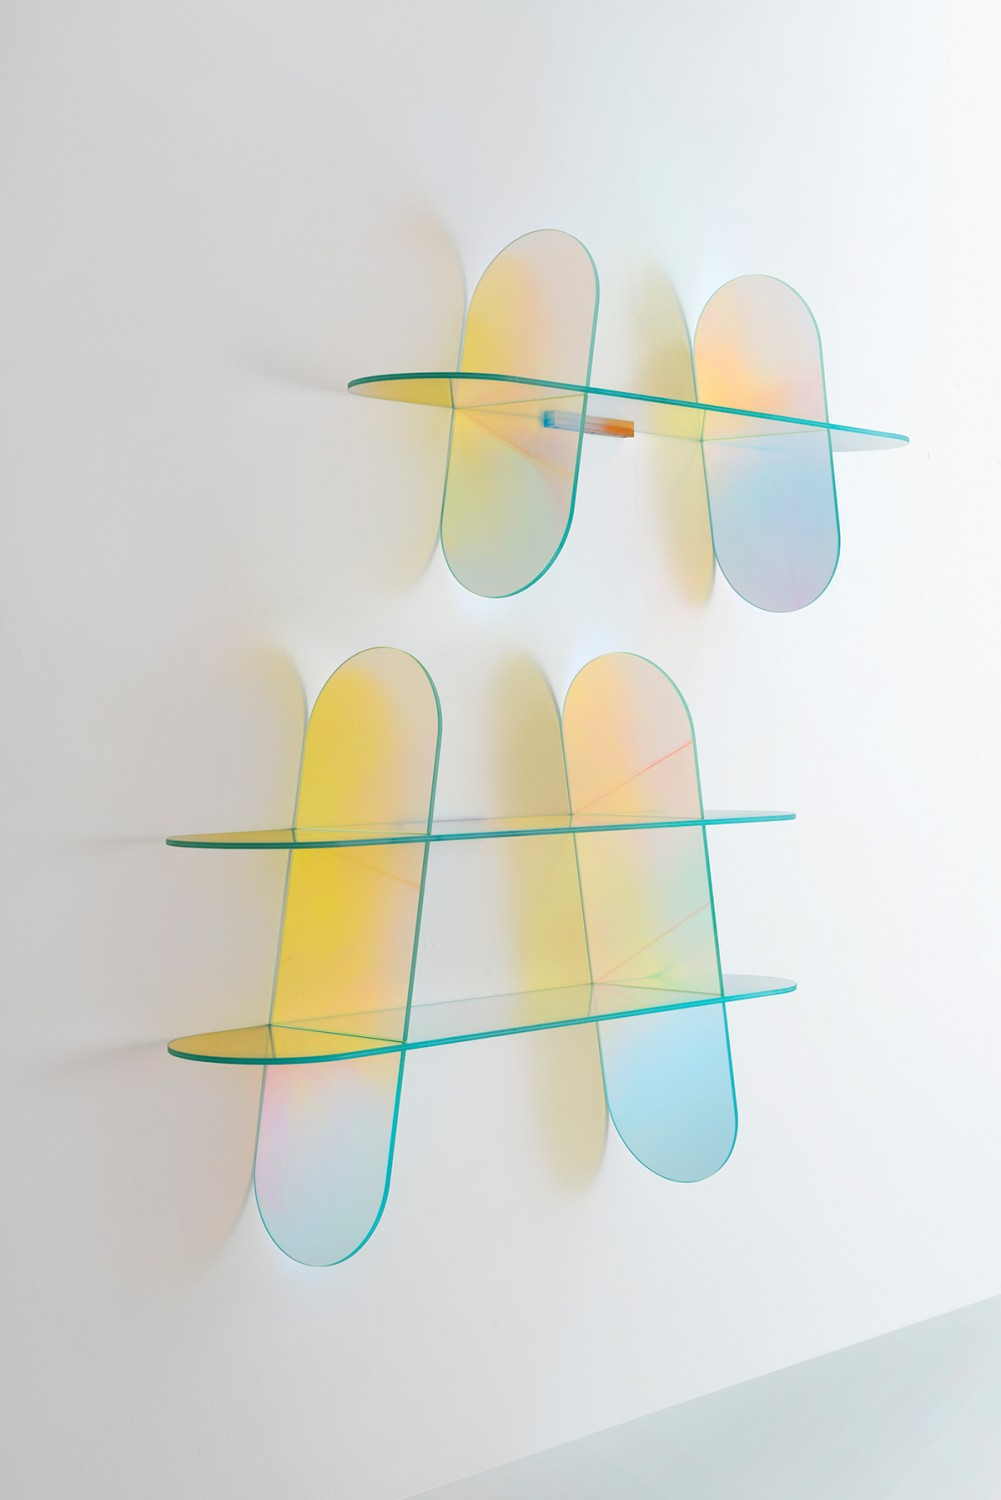 Shimmer shelf by Patricia Urquiola for Glas Italia | Flodeau.com